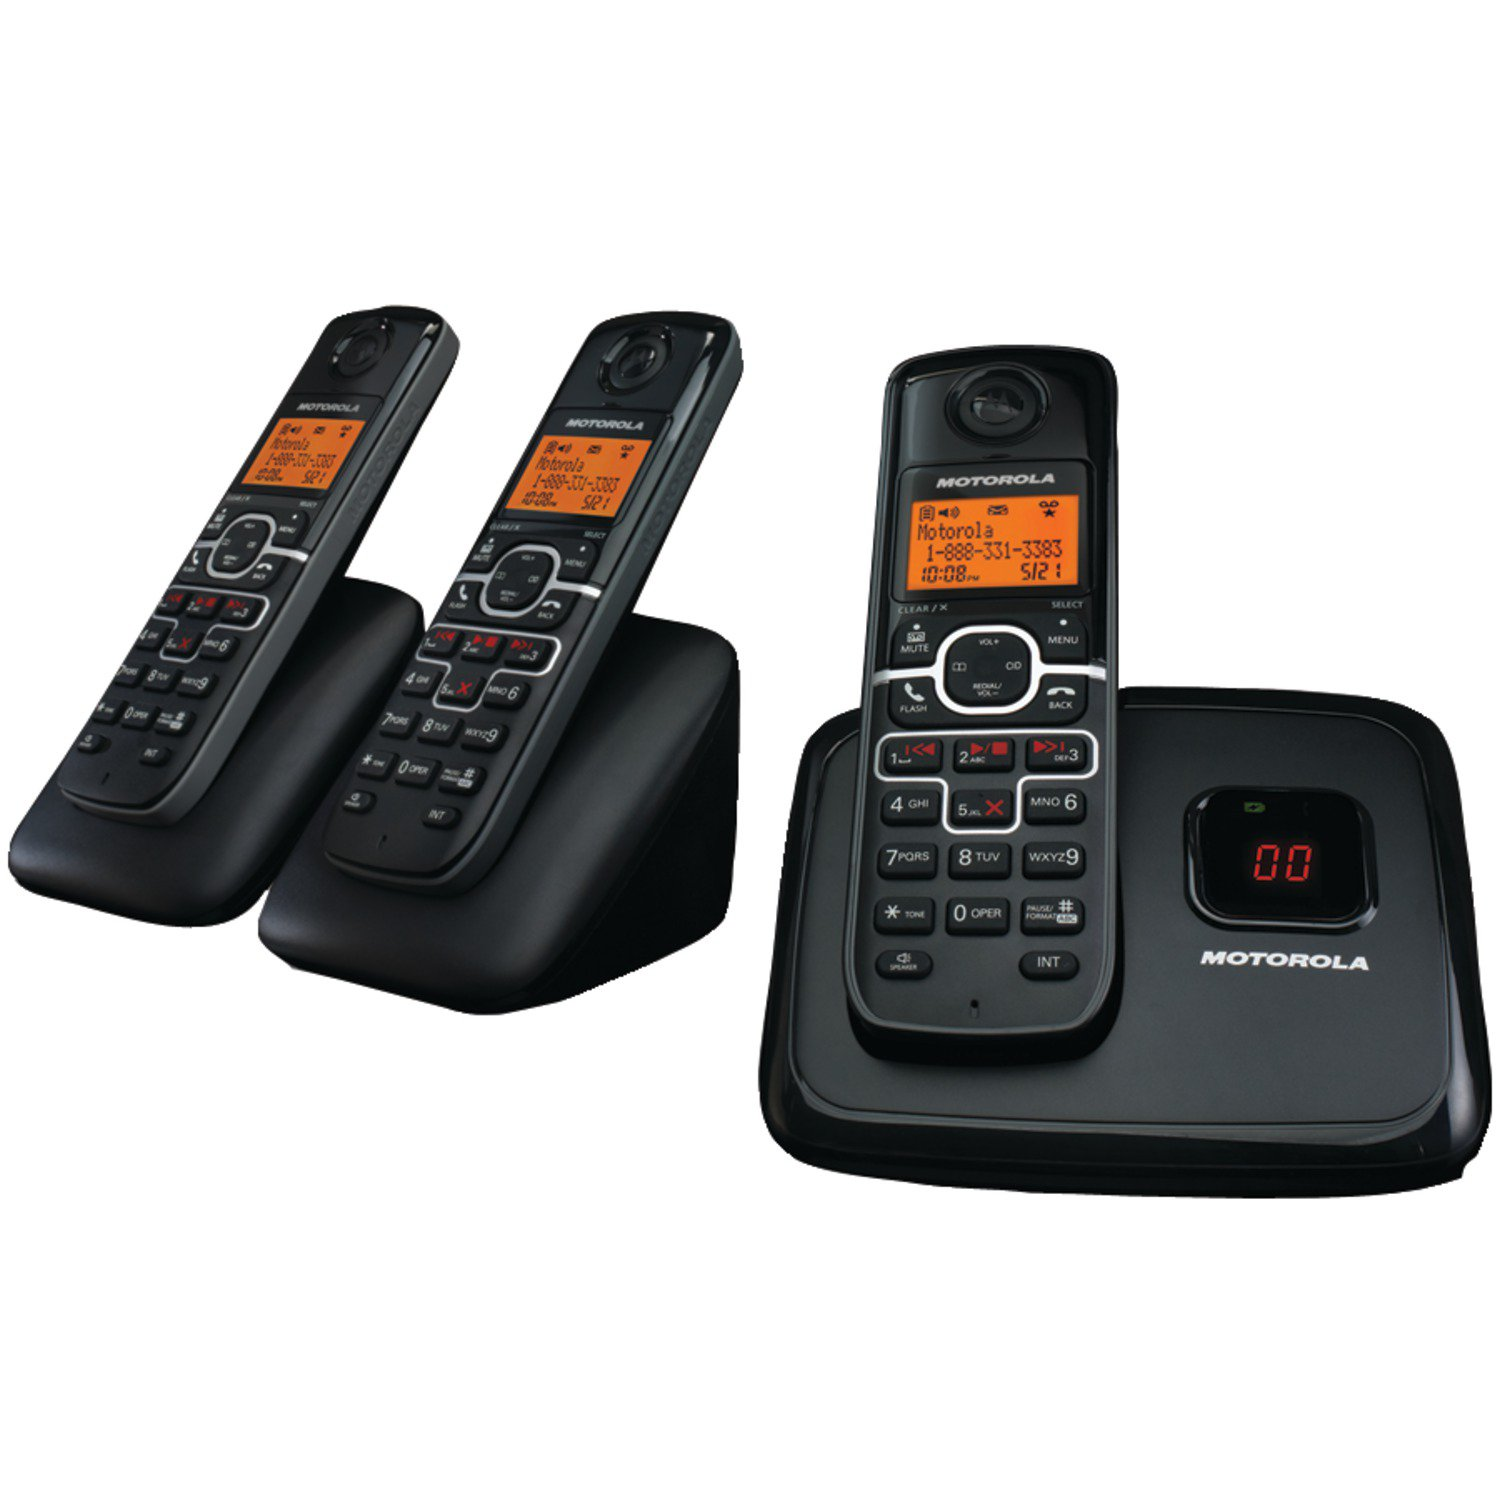 Motorola L703M Dect 6.0 Cordless Phone with 3 Handsets an...